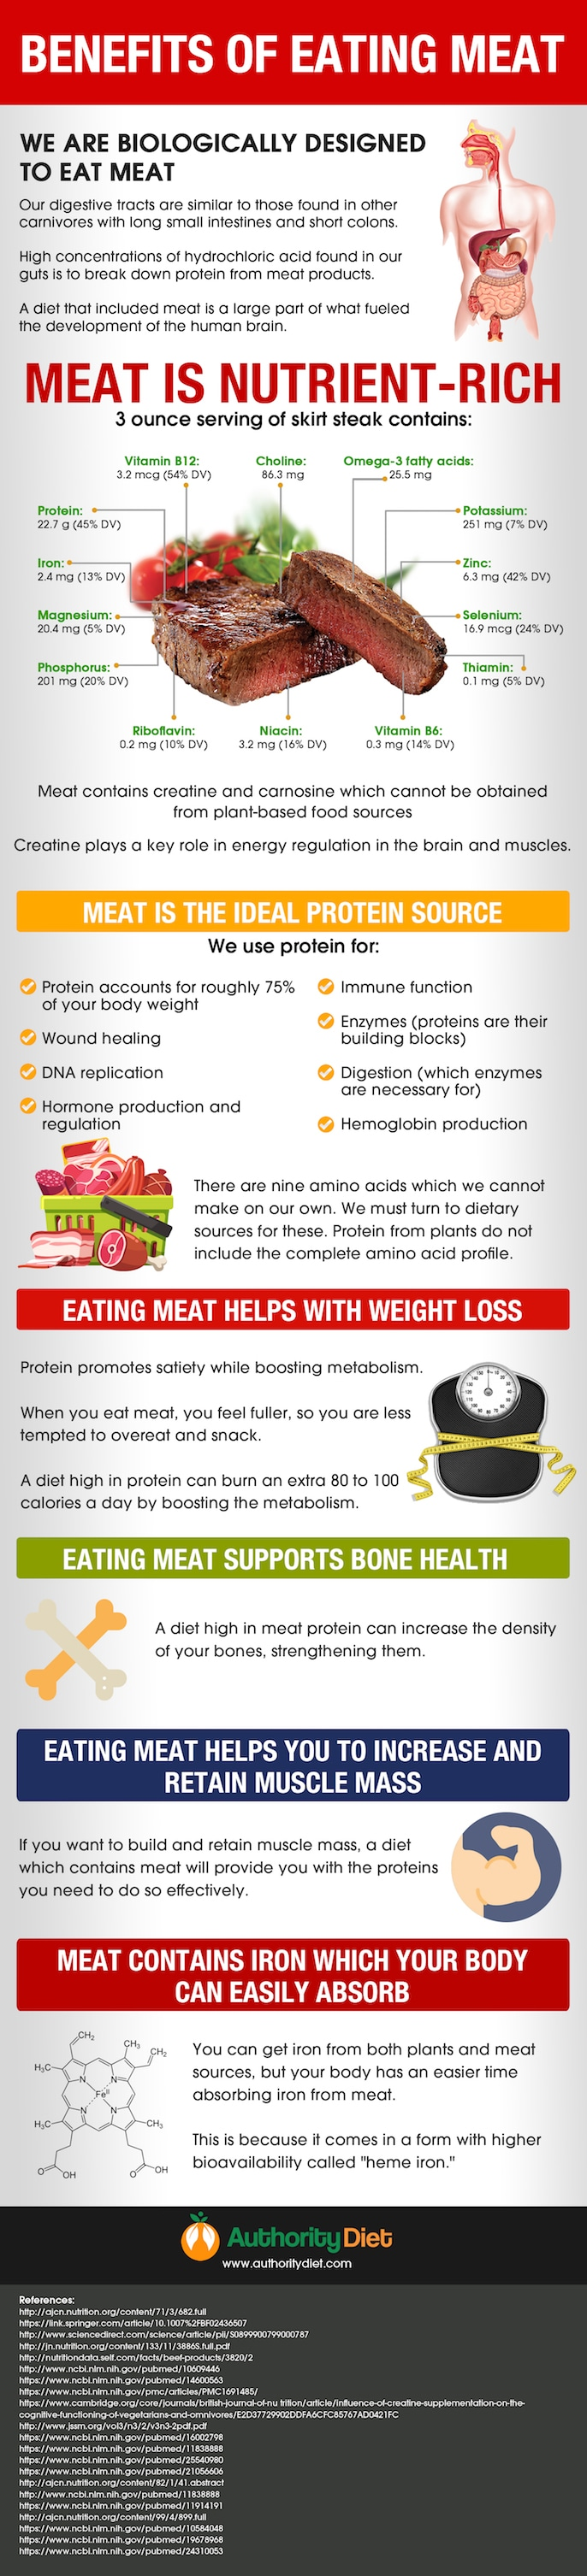 Health Benefits of Eating Meat #infographic